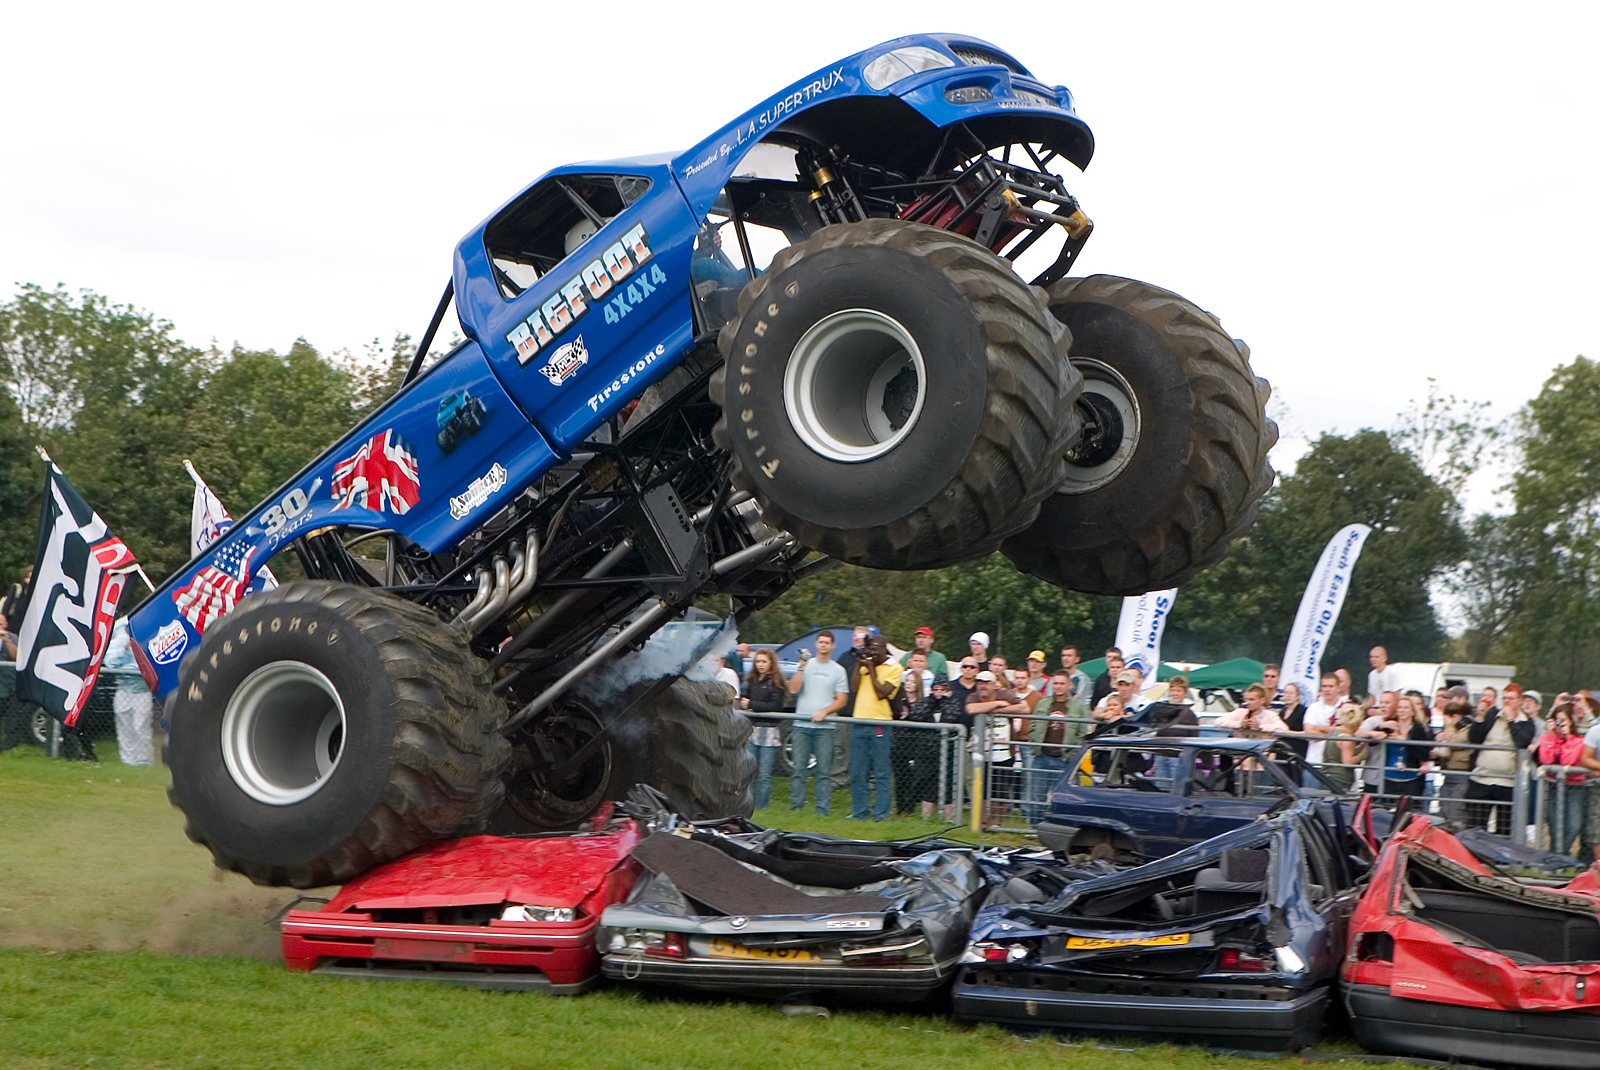 monstertrucks_wallpaper_019_1600_1070.jpg